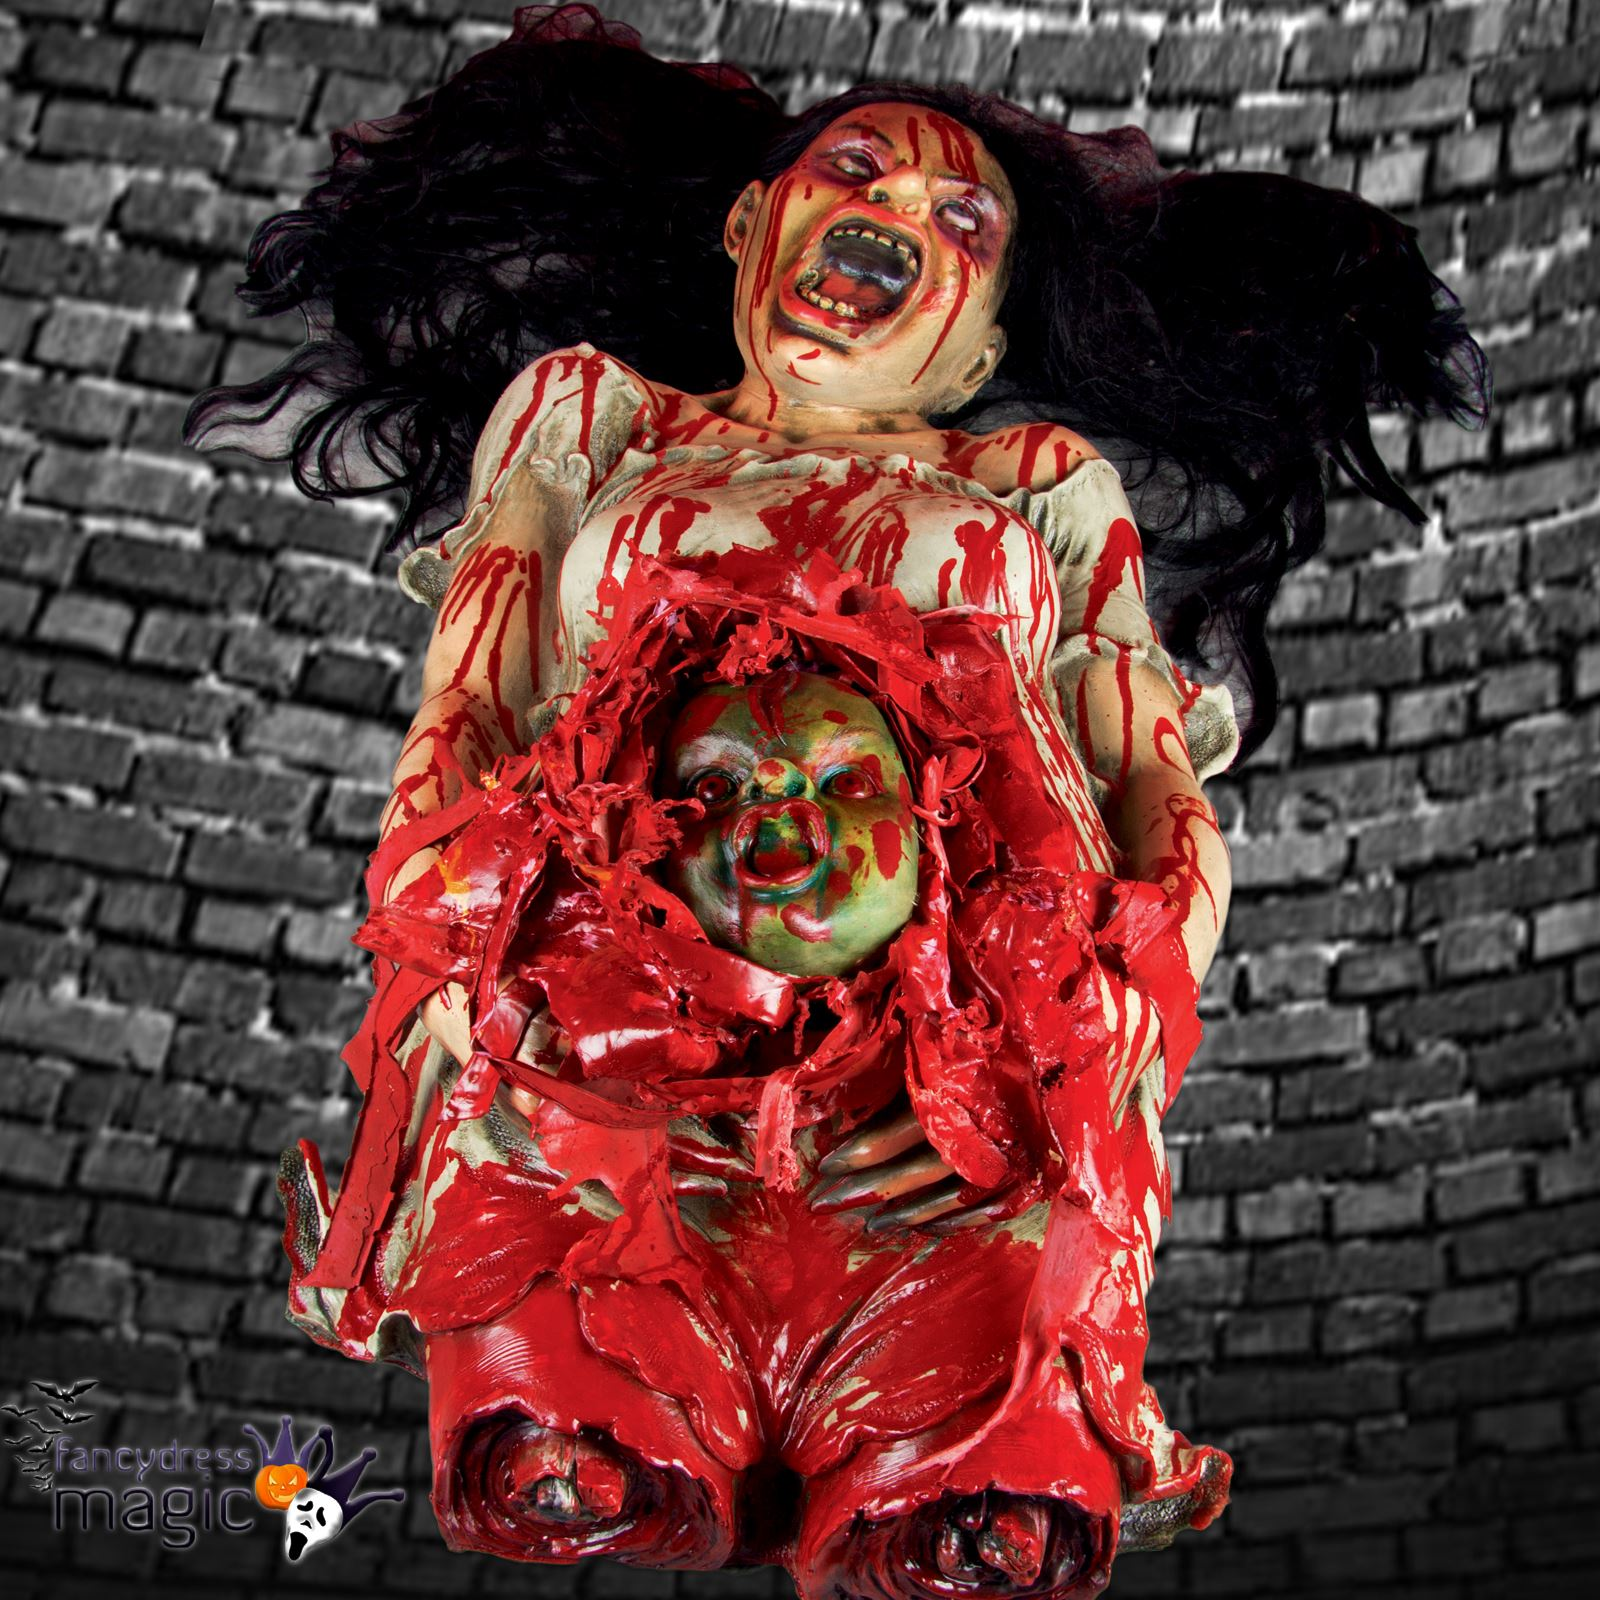 Halloween Gory Horror Pregnant Woman Corpse Zombie Baby Floor Decoration Prop BN & Halloween Gory Horror Pregnant Woman Corpse Zombie Baby Floor ...